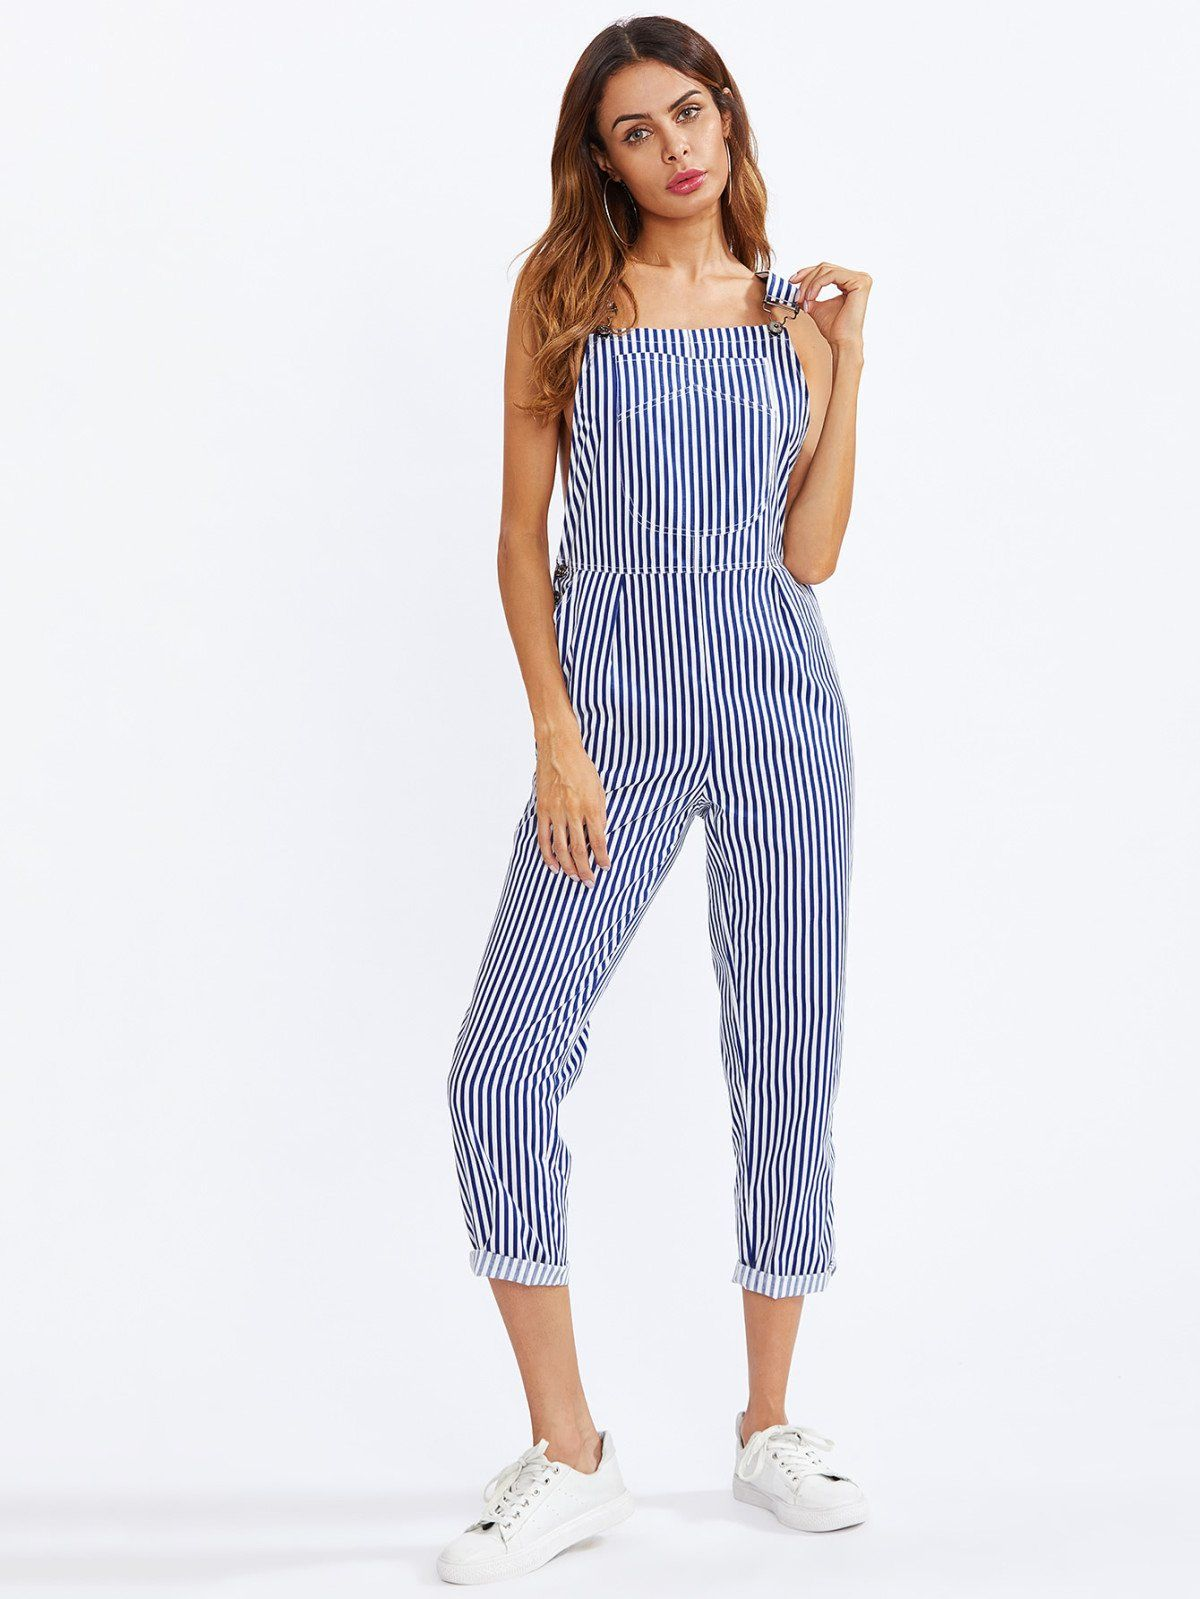 077380cda535 Jumpsuits by BORNTOWEAR. Bib Pocket Front Striped Overalls